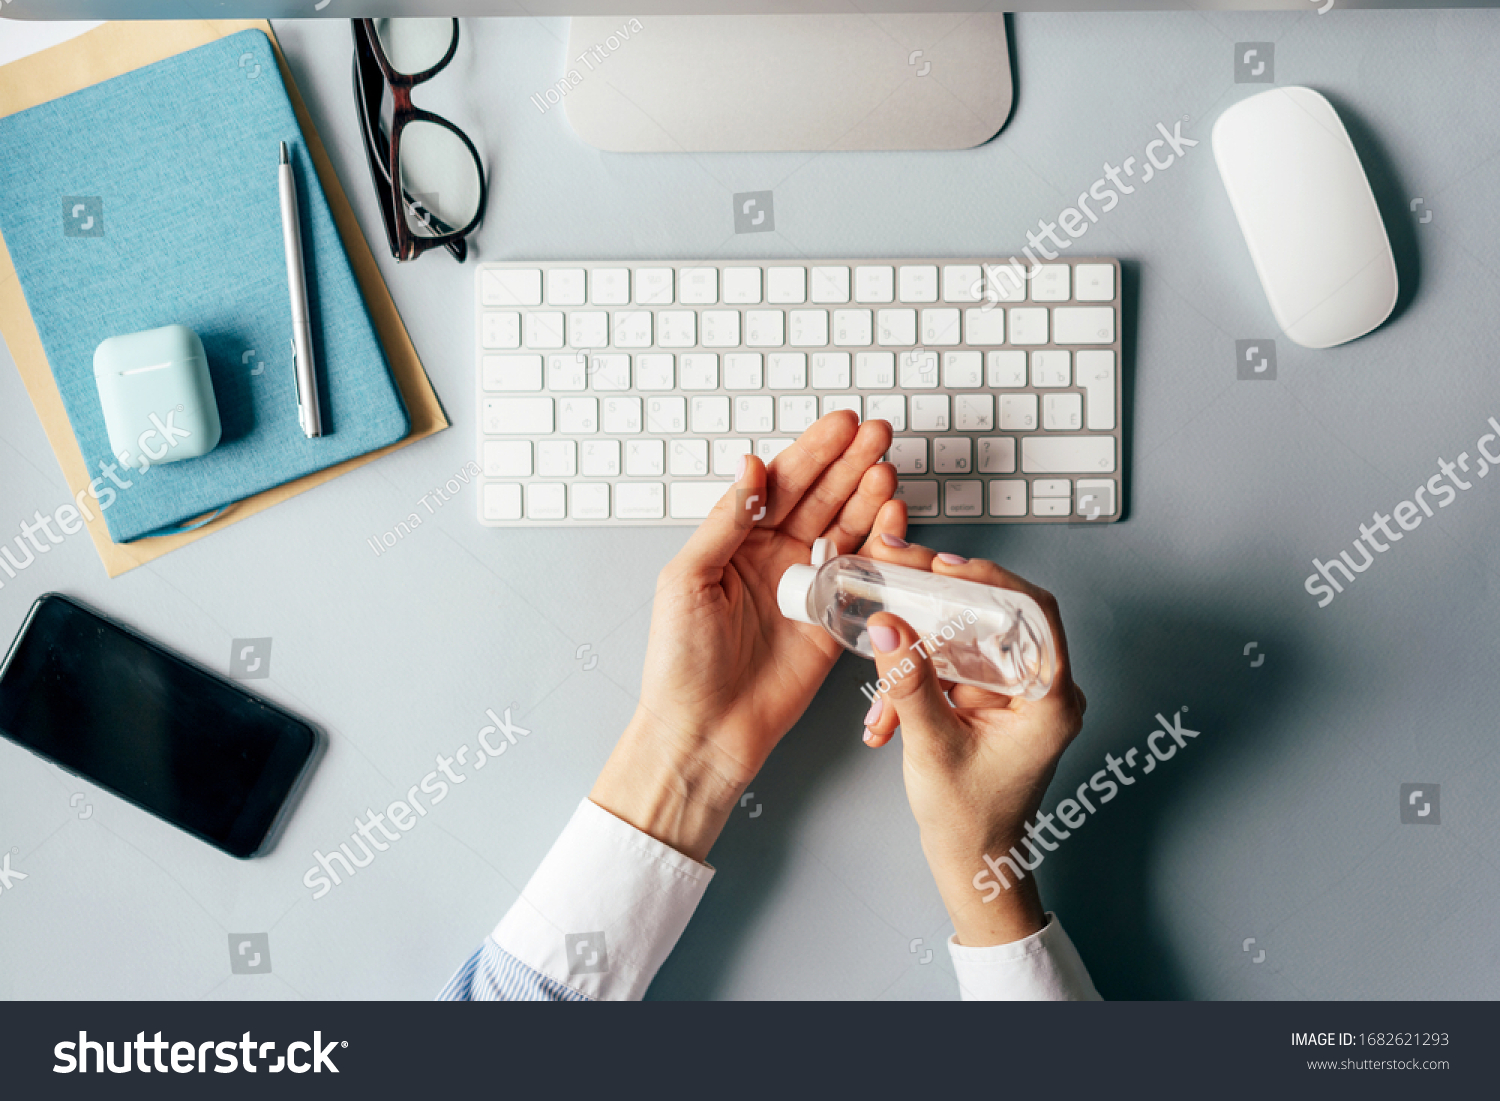 Close-up of hands using antiseptic gel to disinfect hands over a work desk in an office. Preventive measures during the period of epidemic and social exclusion. #1682621293